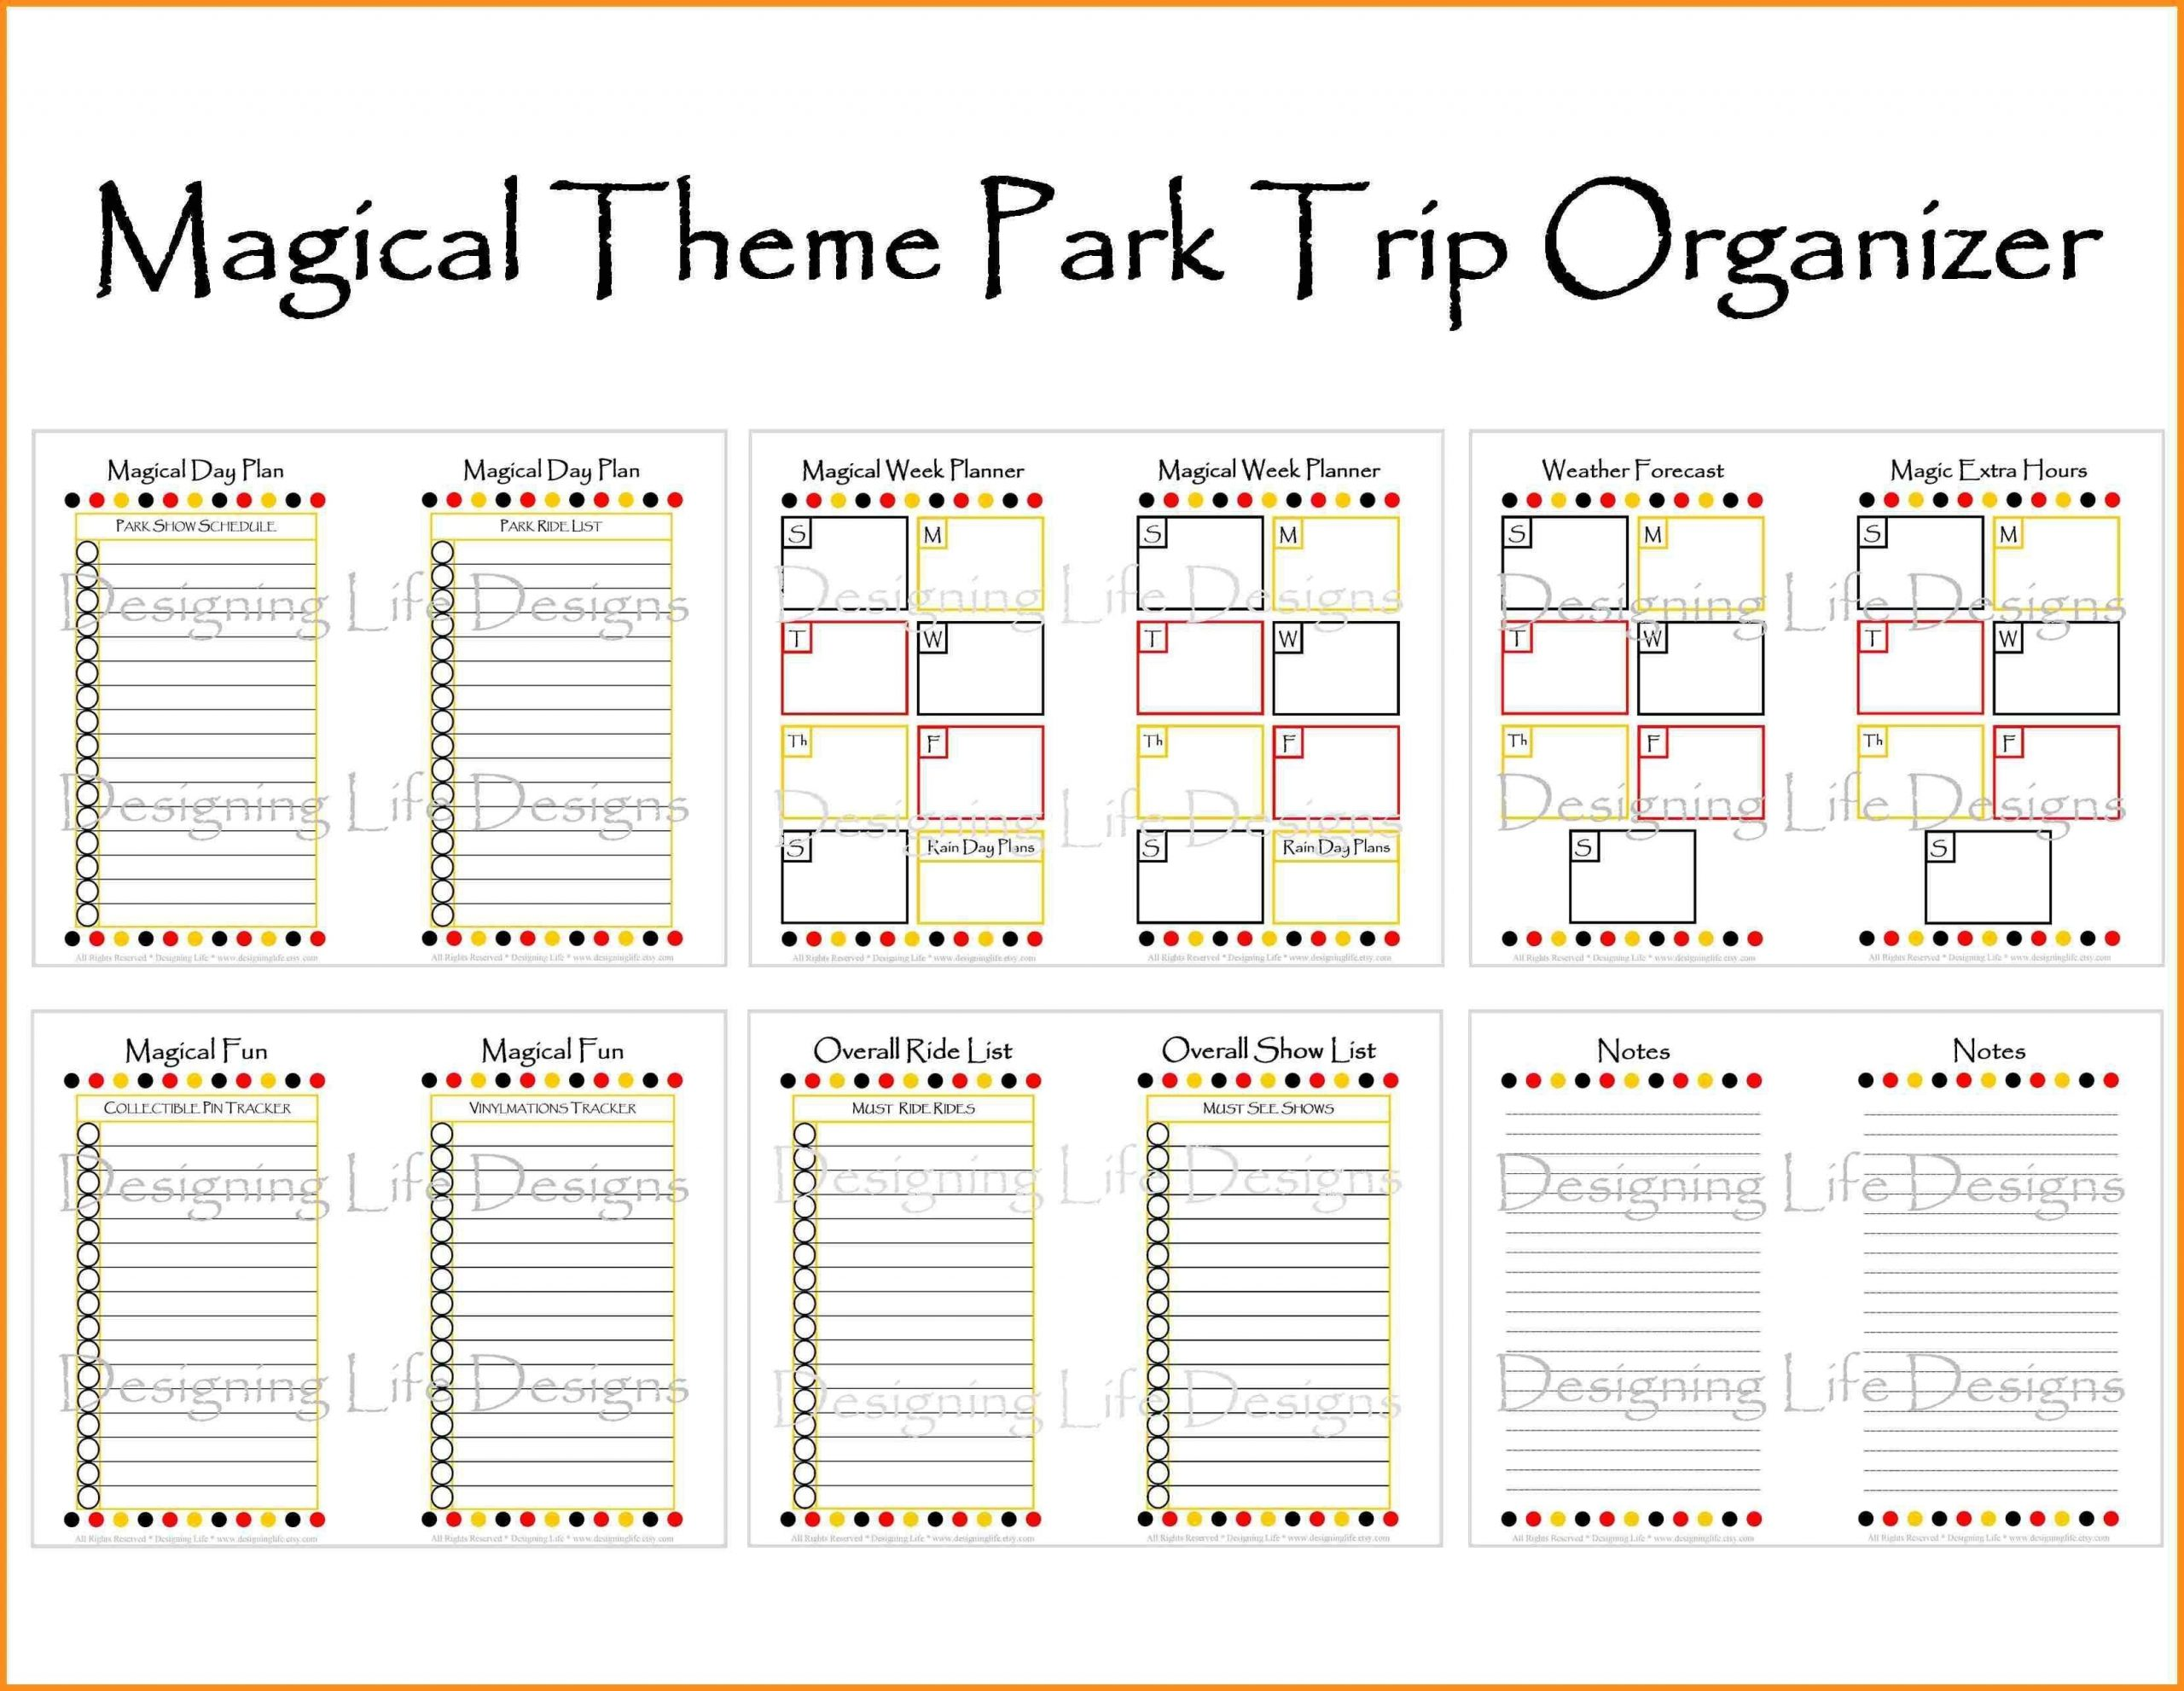 Image Result For Disney World Itinerary Template | Itinerary  Free Disney World Itinerary Template